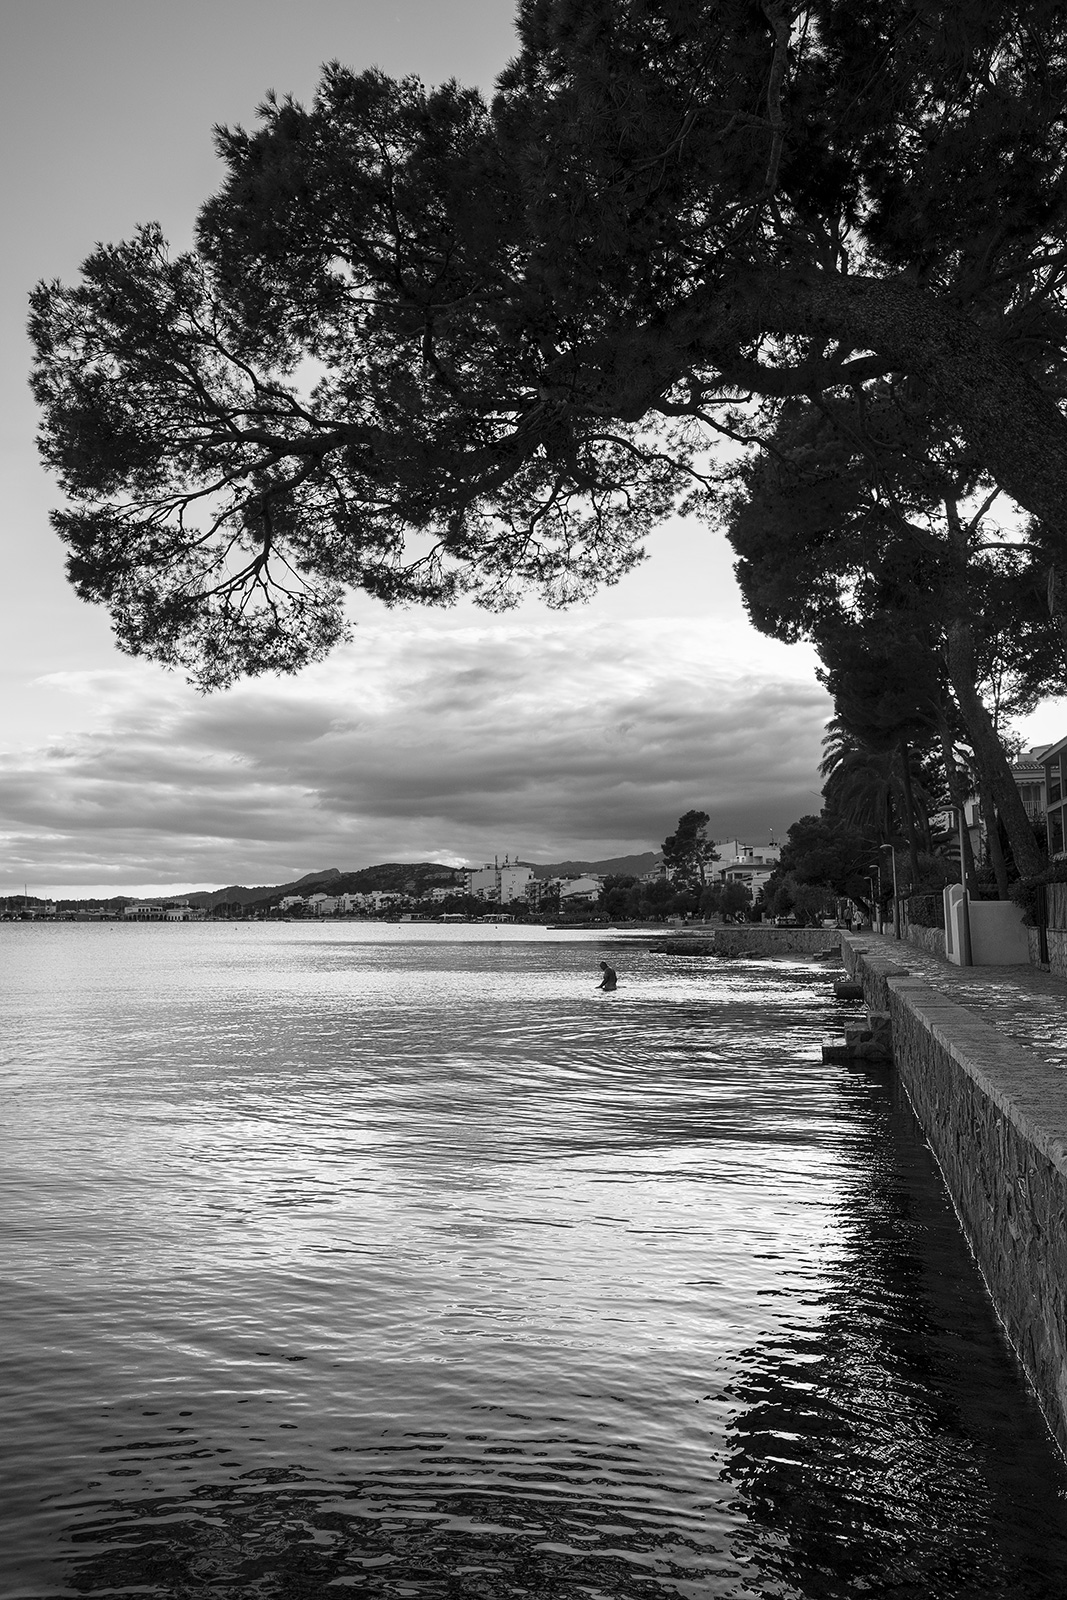 Silhouette of lone figure wading into ocean by seafront under boughs of pine tree Passage de Colom, Port de Pollenca Mallorca Spain black and white landscape portrait ©P. Maton 2019 eyeteeth.net